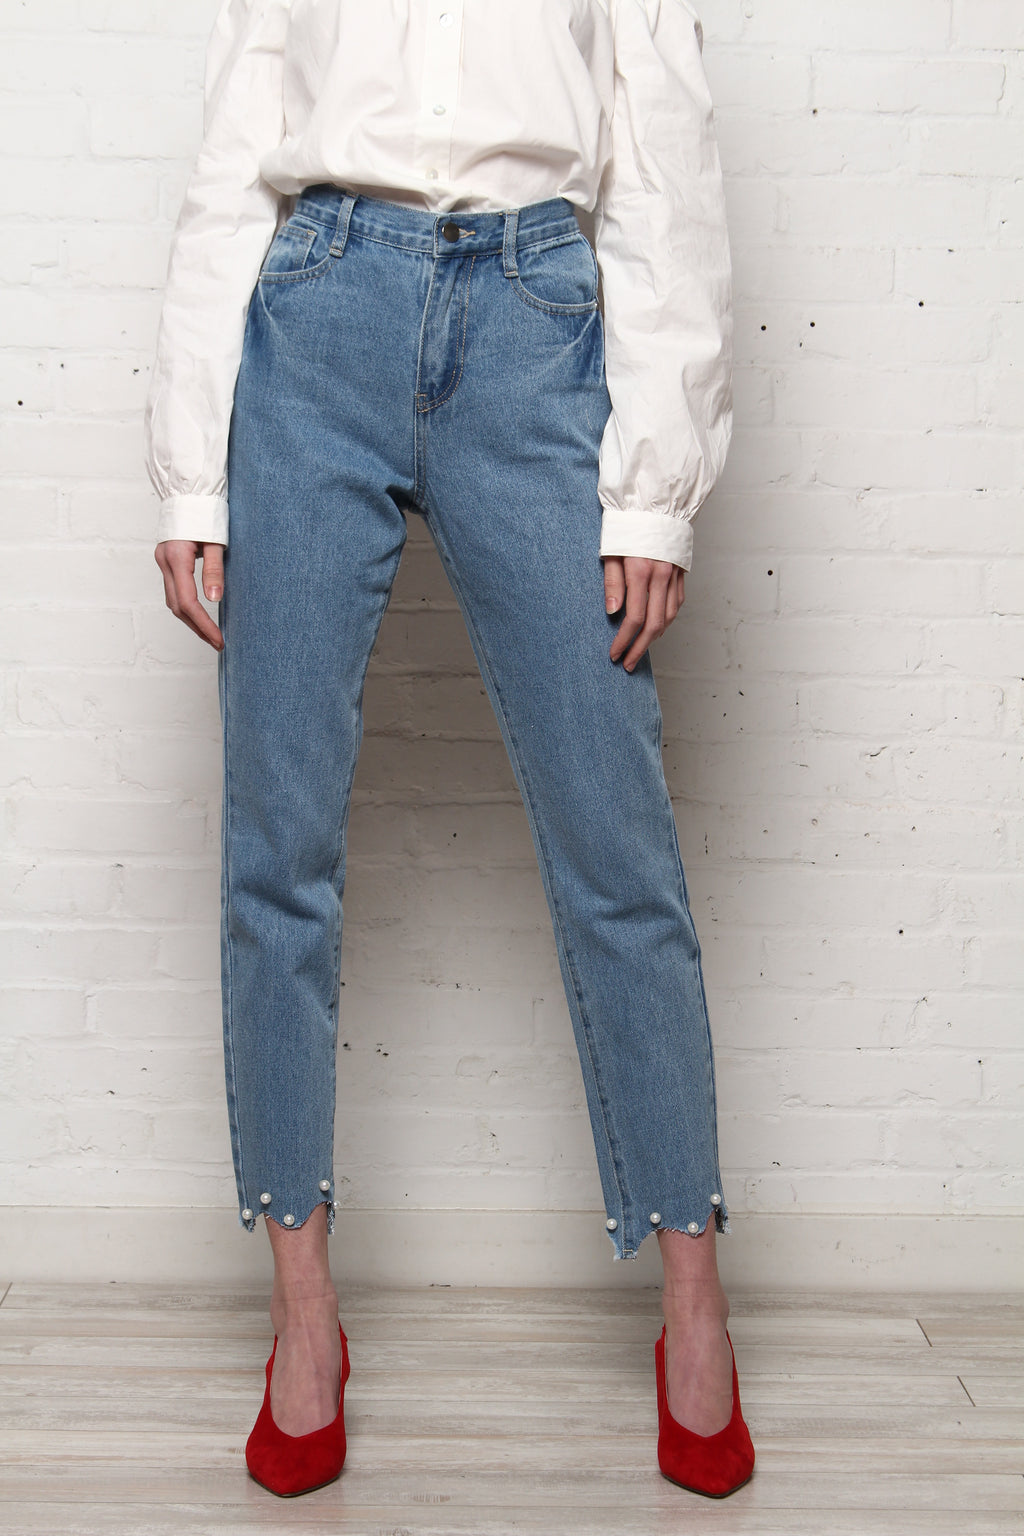 Jovanna London Highwaist Pearl Jeans